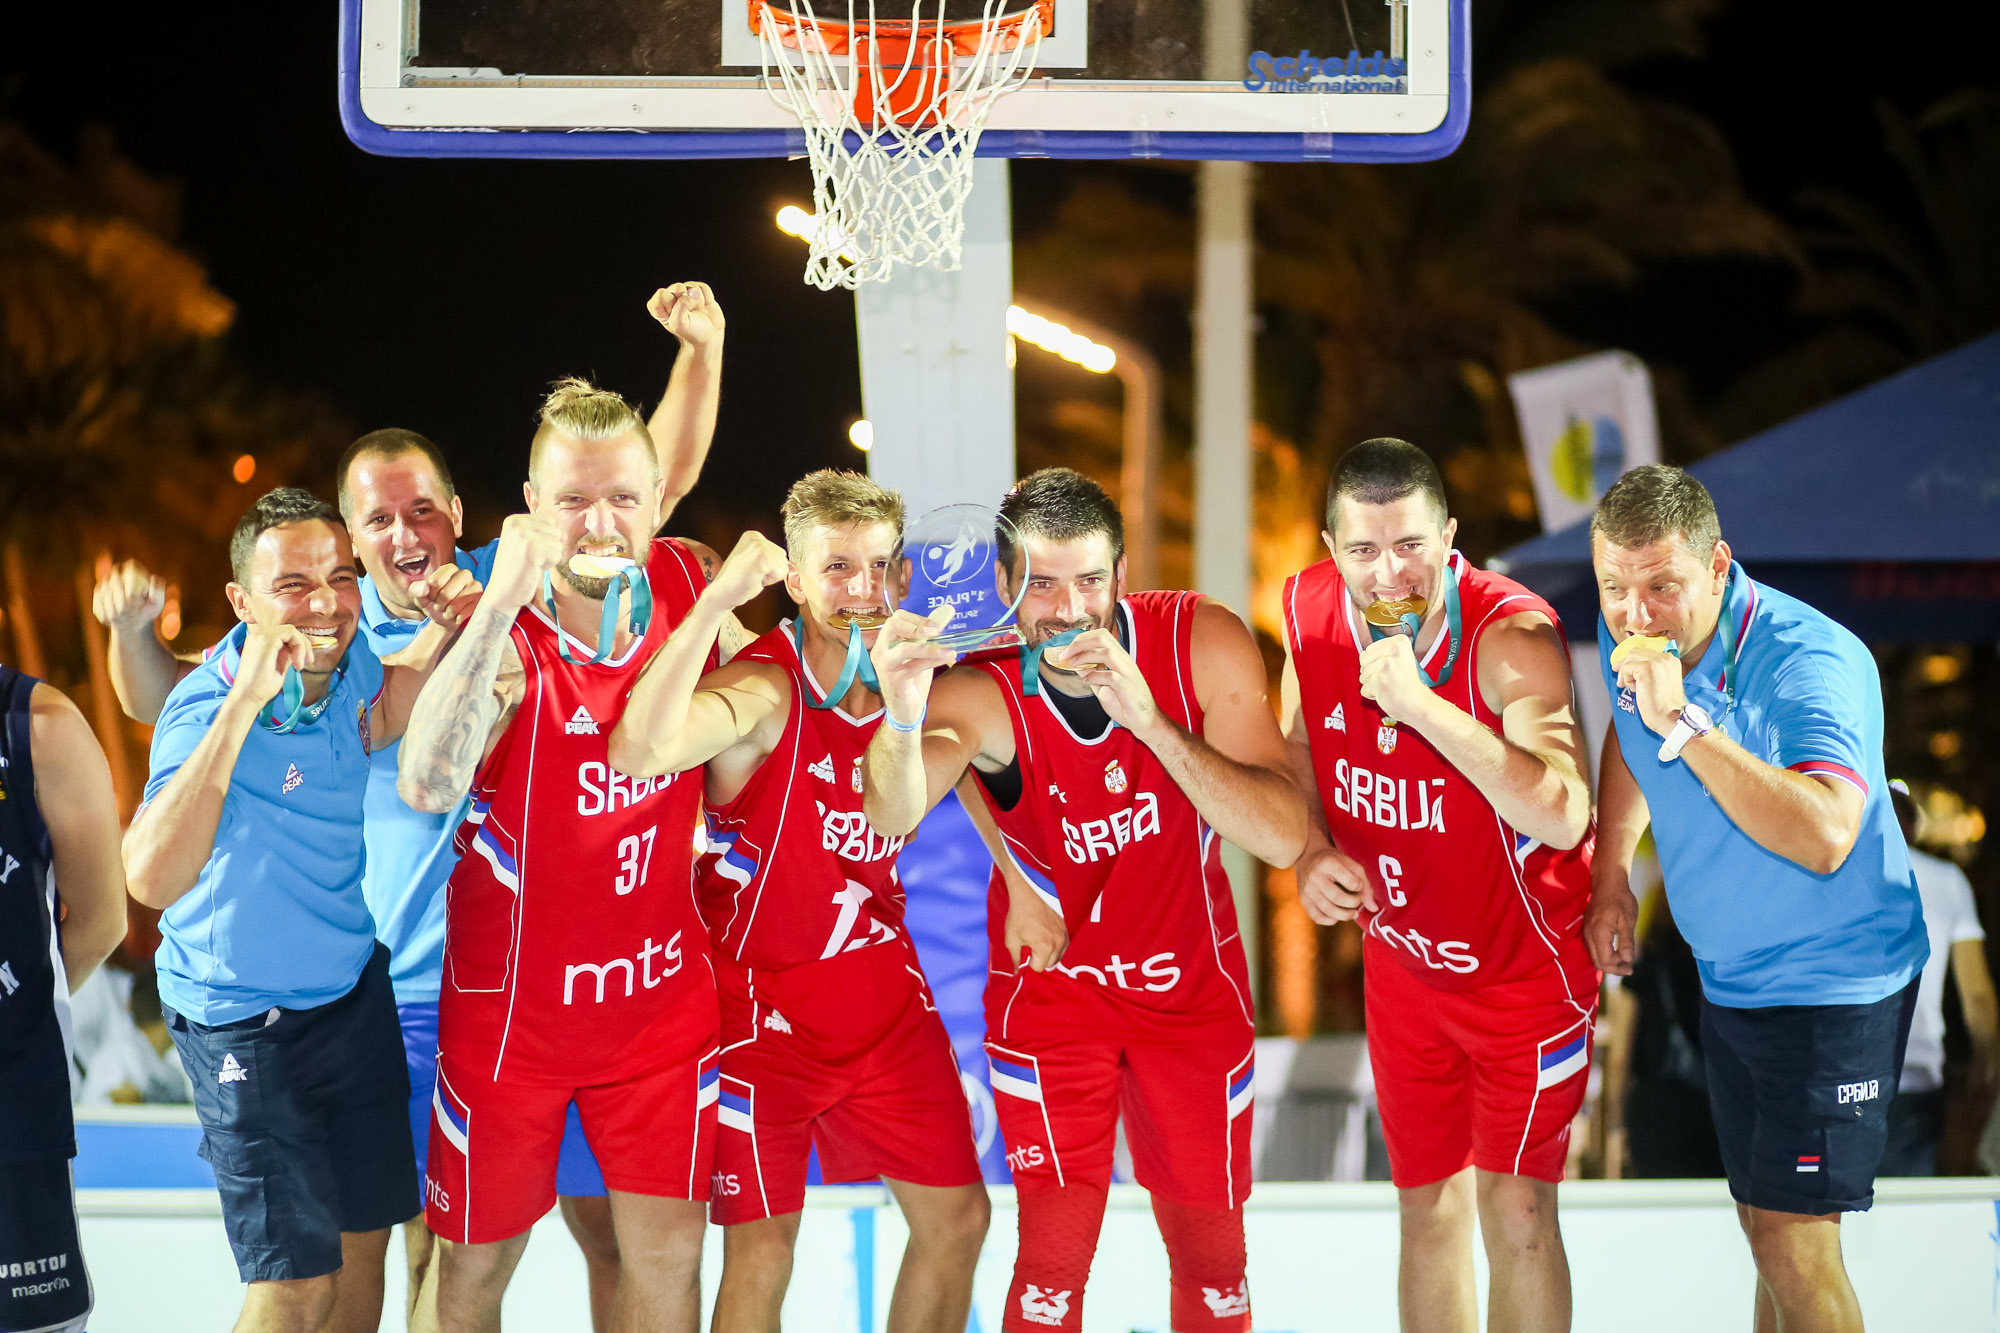 European Universities 3x3 Basketball Championship EUSA Split